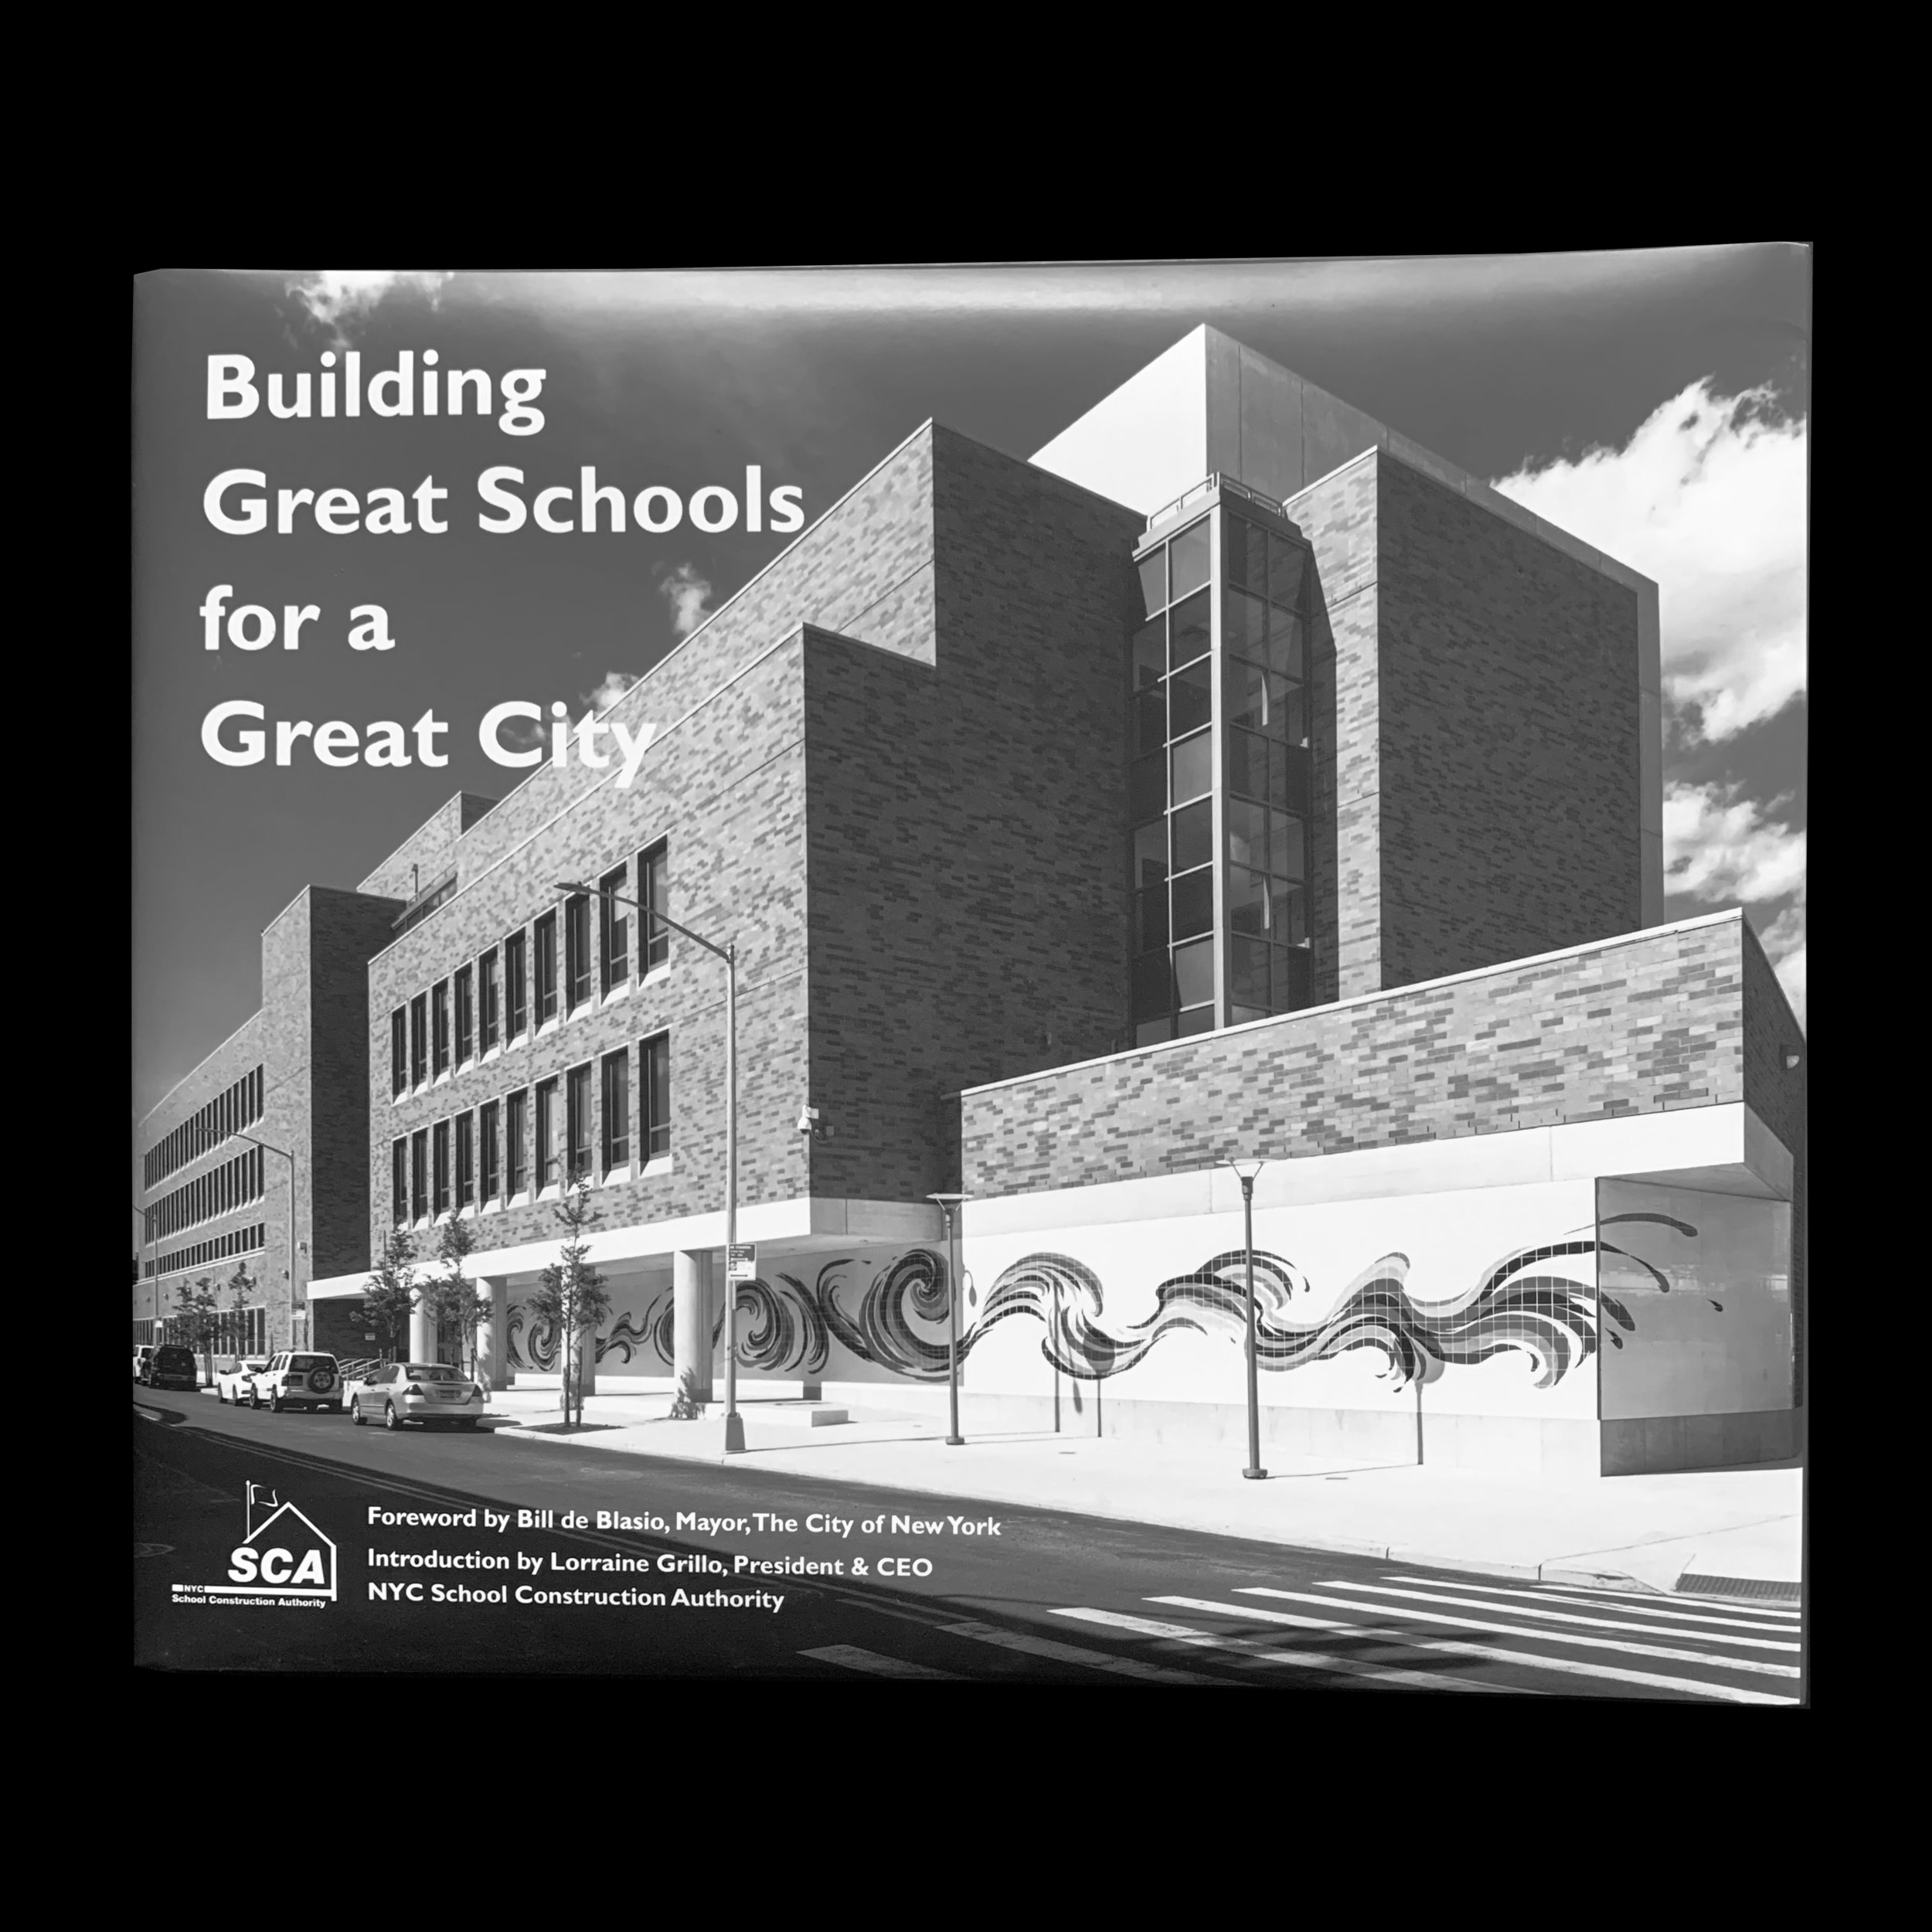 Building Great Schools for a Great City   The New York City School Construction Authority's (SCA) mission is to design and construct safe, attractive, and environmentally sound public schools for children throughout the communities of the City's five boroughs. This book celebrates 30 years of their work.